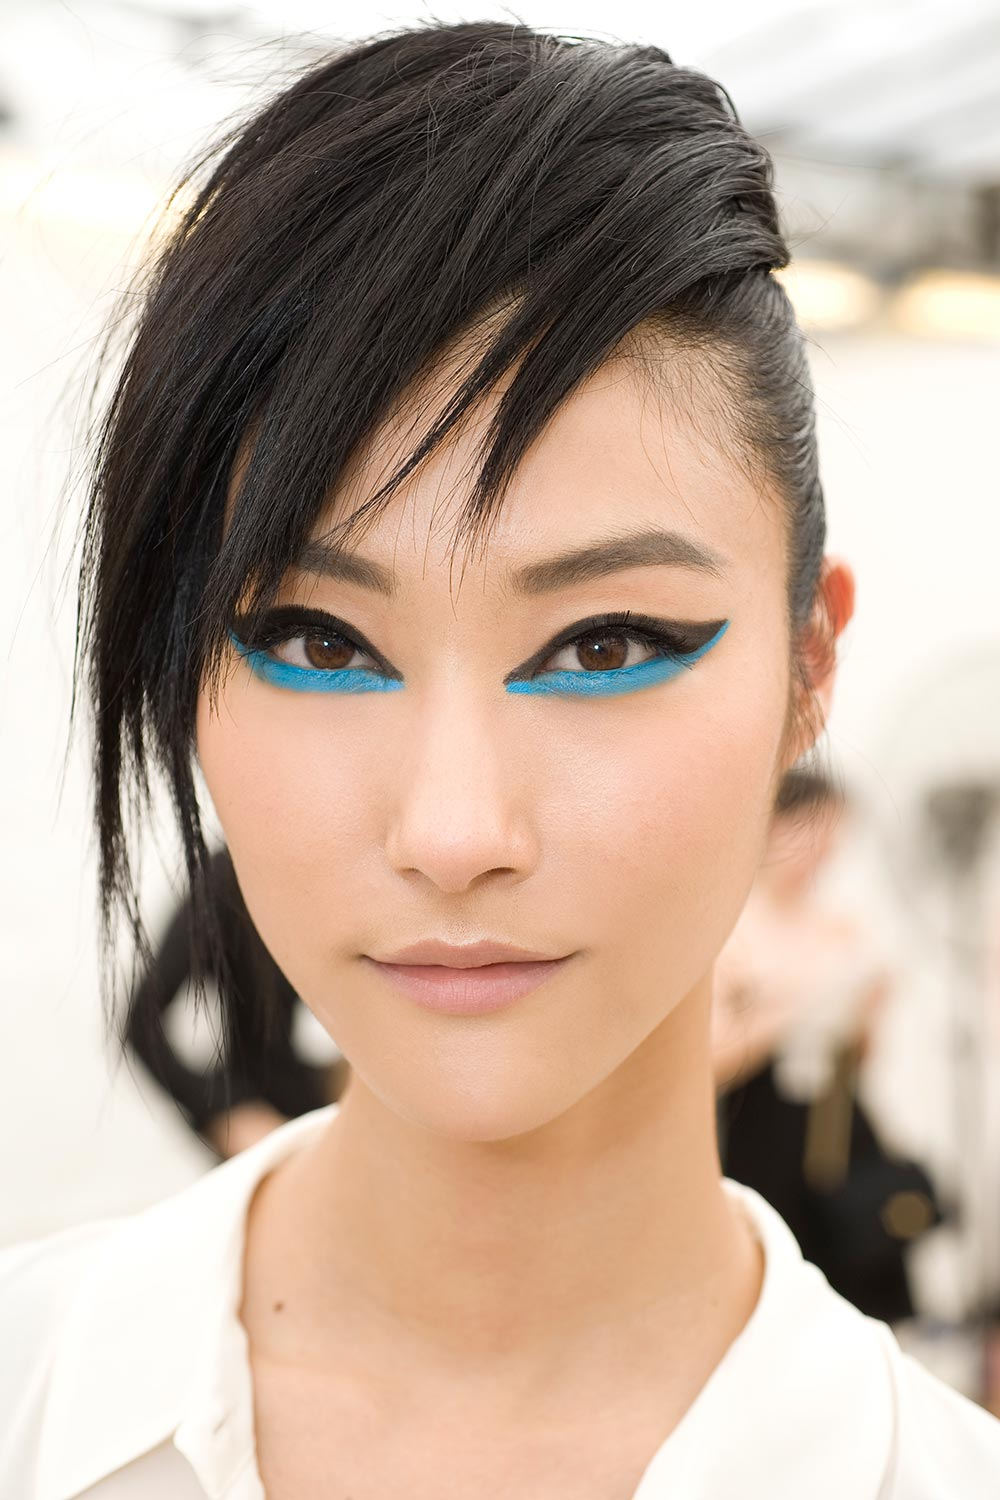 chanel-resort-2014-runway-makeup